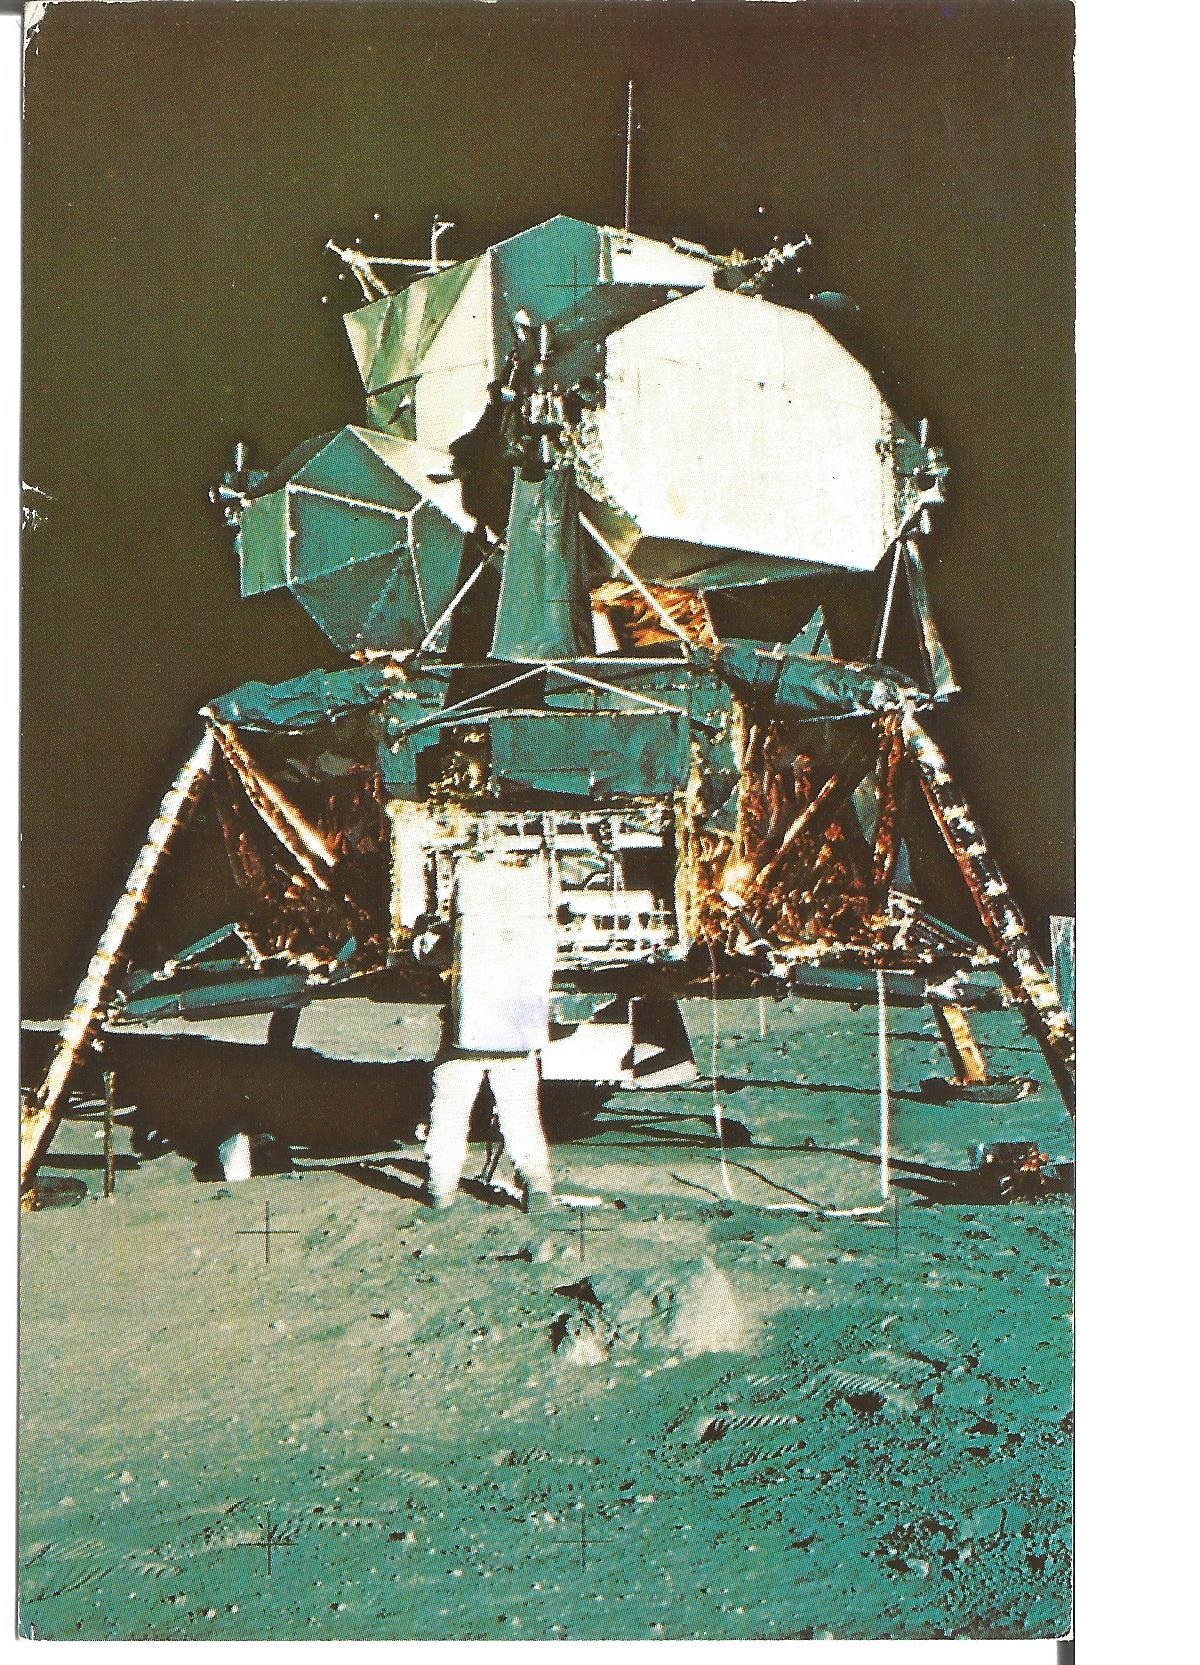 Lot 37 - Buzz Aldrin signed on back of postcard. Good Condition. All signed pieces come with a Certificate of